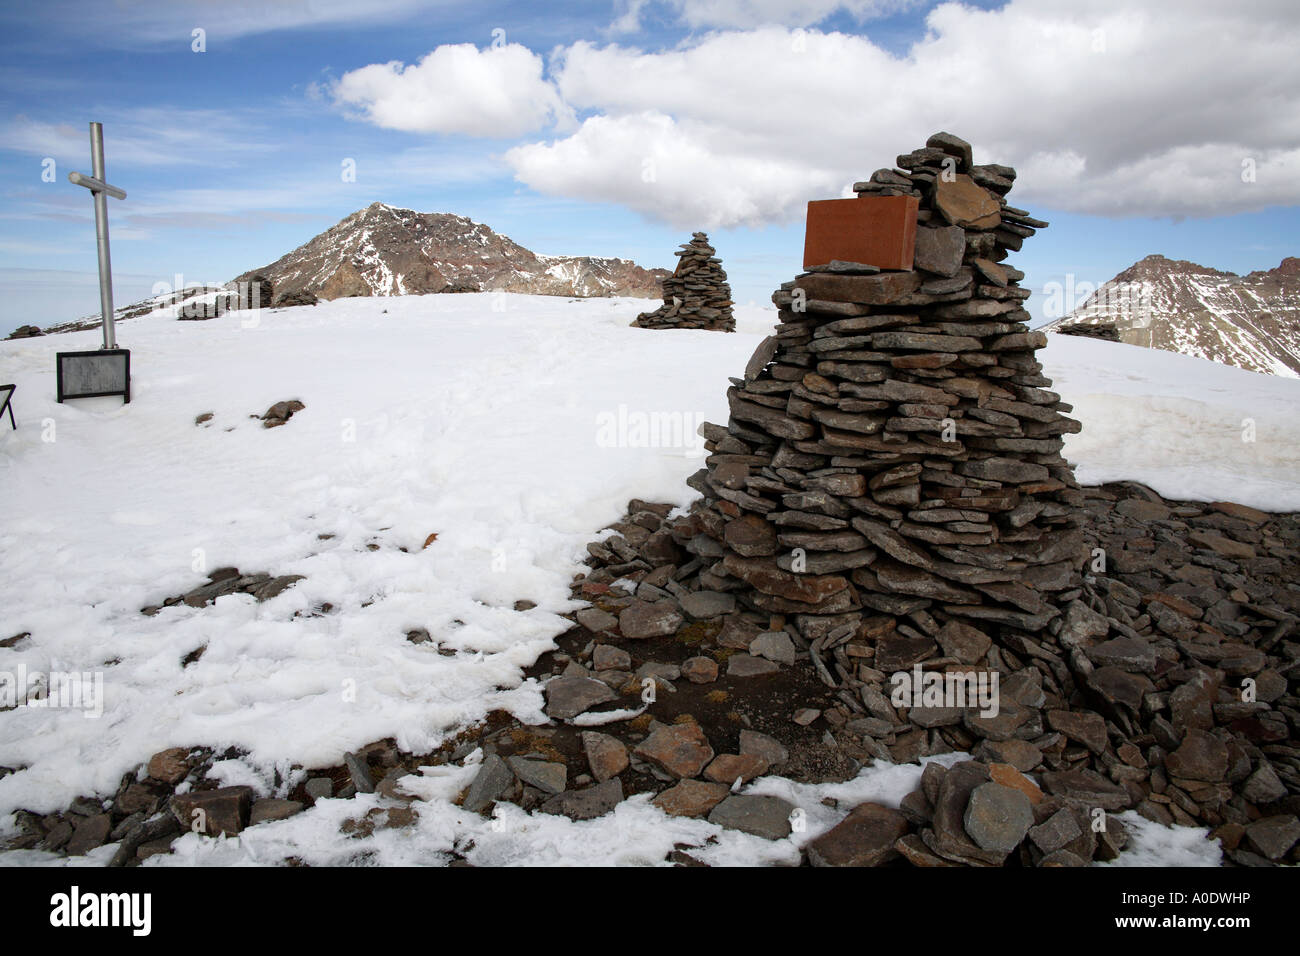 Stone cairns and resuce teams cross marker at first peak on Mount Aragats. Armenia, Southwest Asia - Stock Image